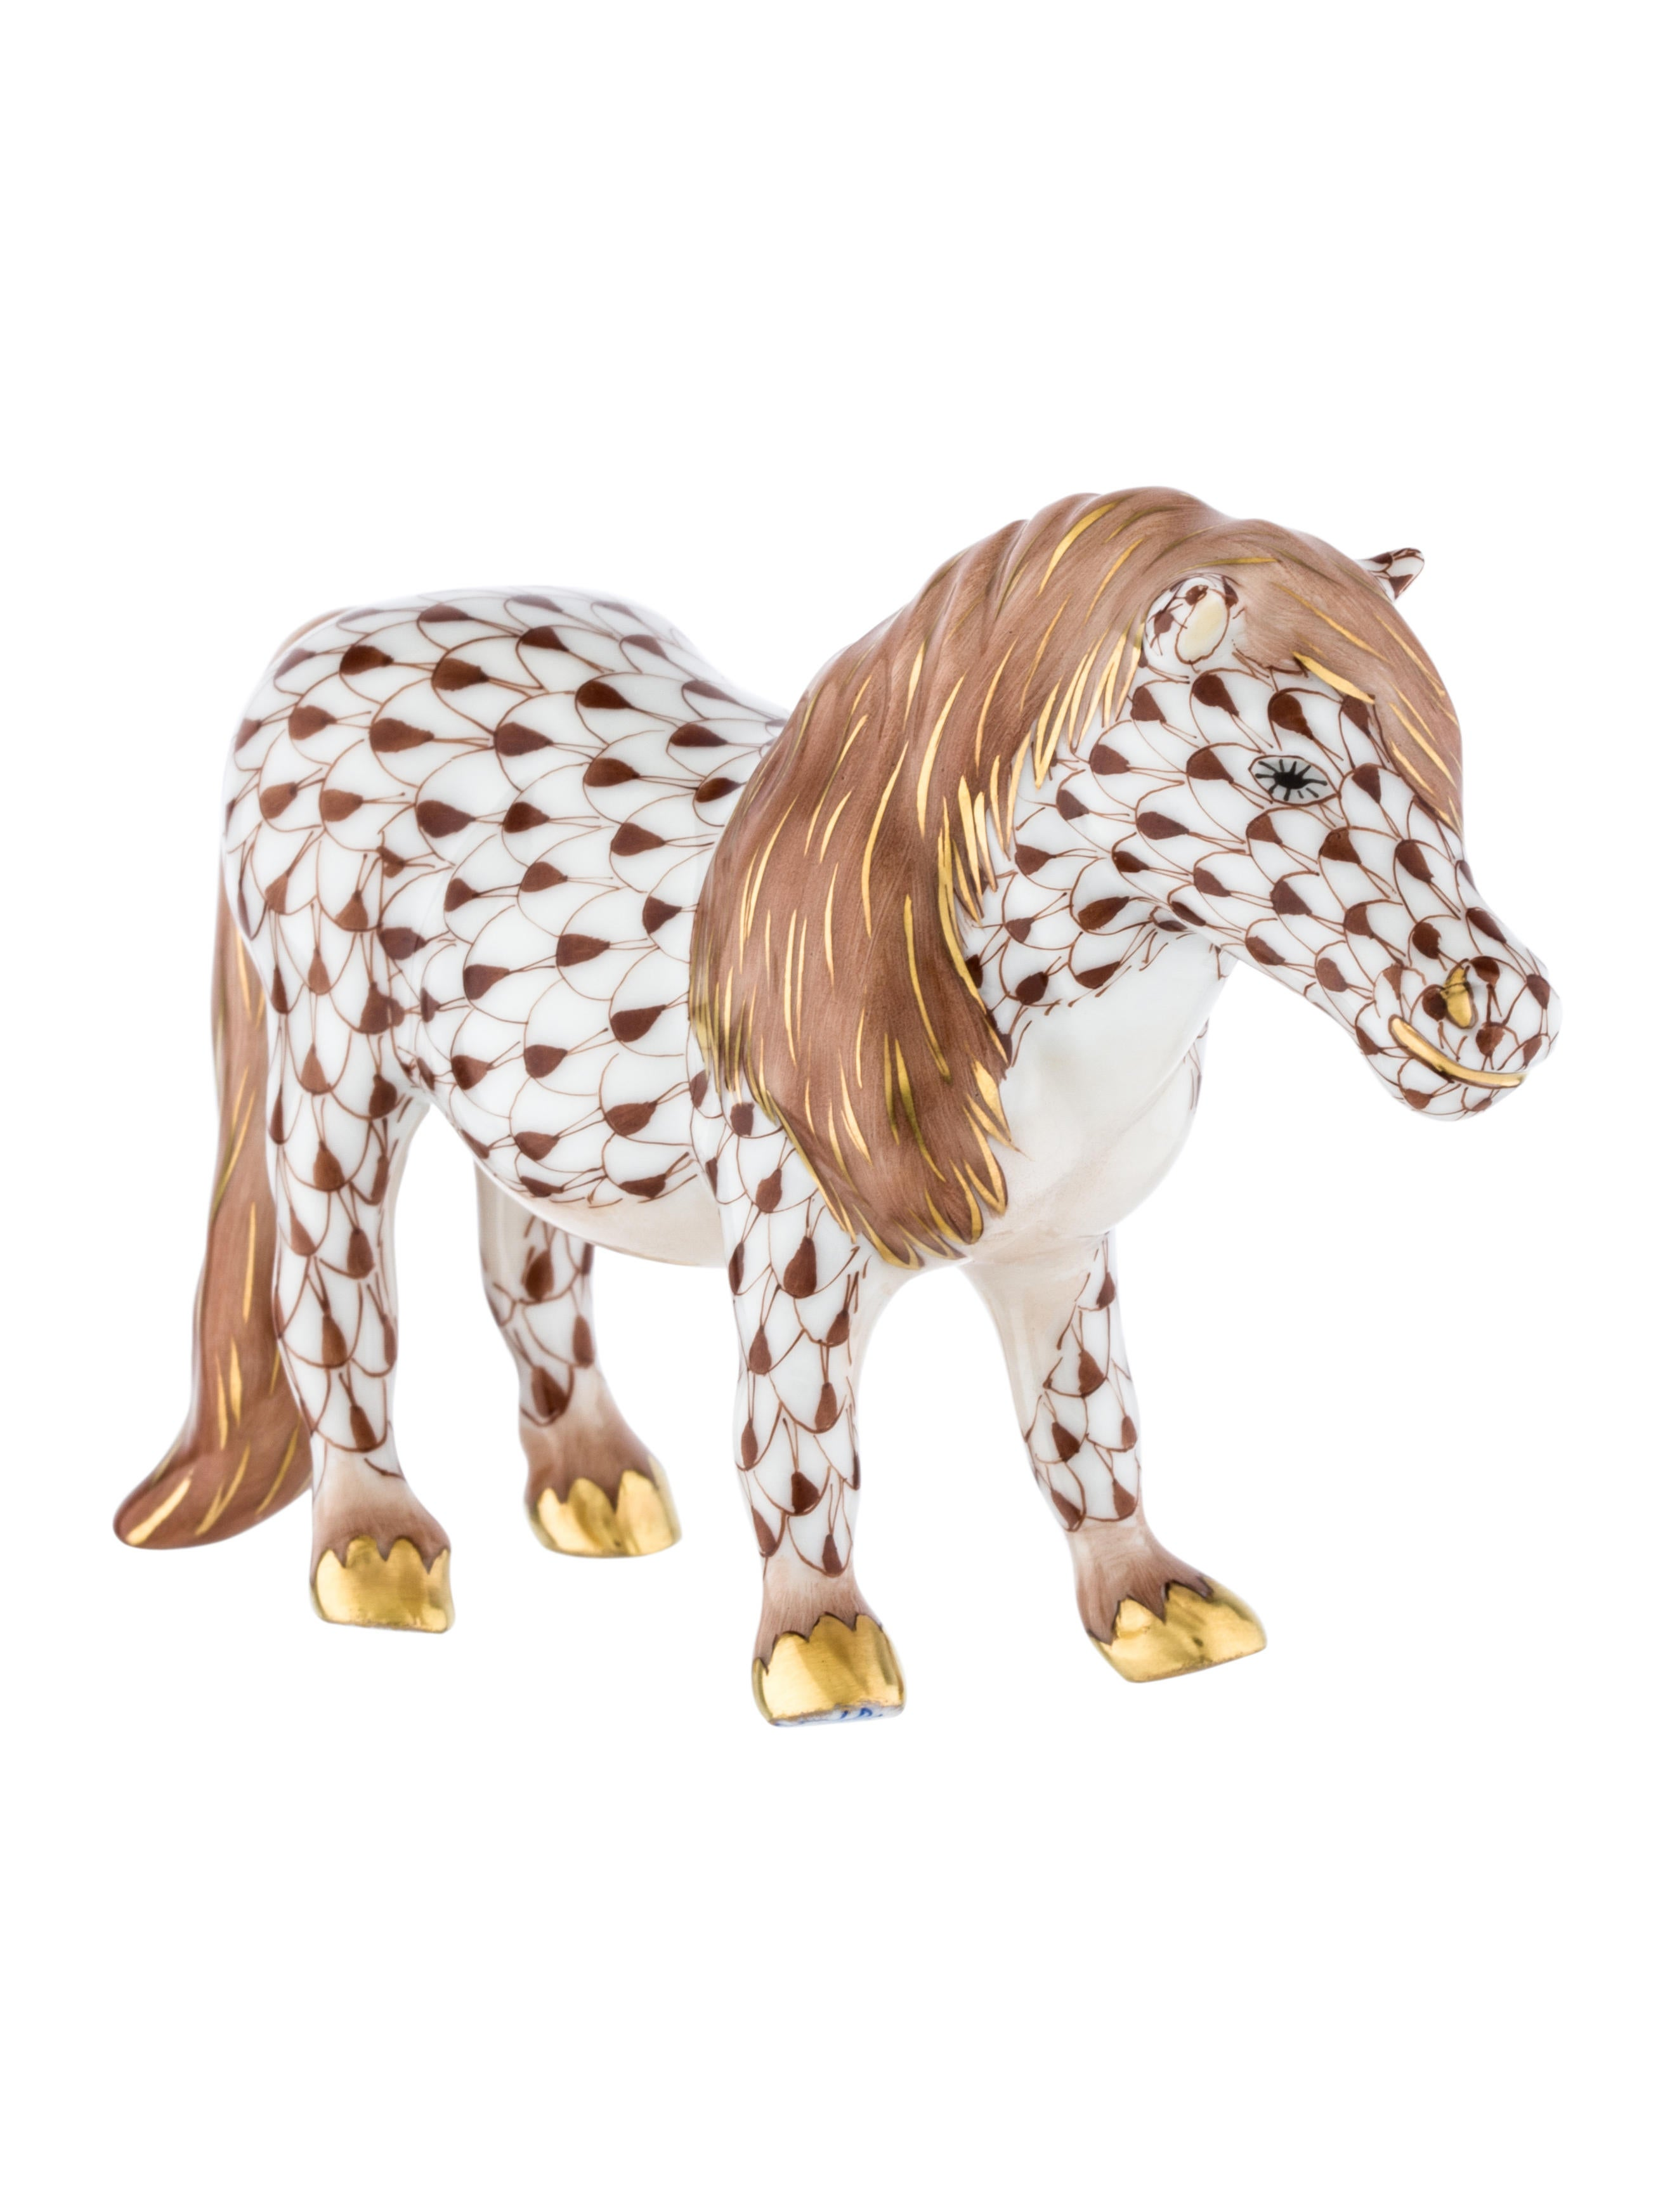 Herend Horse Figurine Decor And Accessories HND21403  : HND214032enlarged from www.therealreal.com size 2644 x 3488 jpeg 391kB